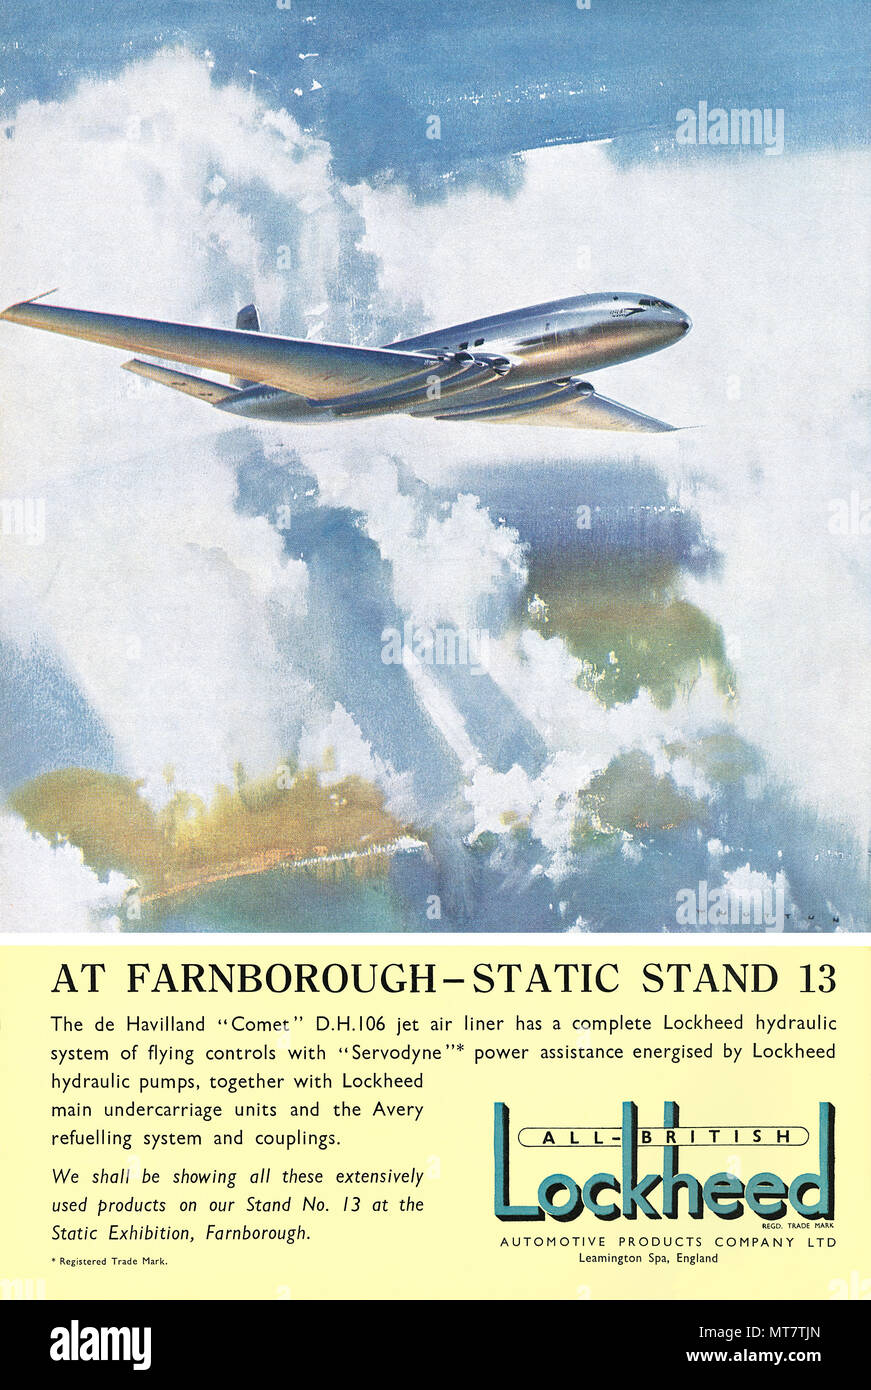 1950 British Advertisement For Lockheed Aviation Systems Featuring The De Havilland DH 106 Comet Jet Airliner